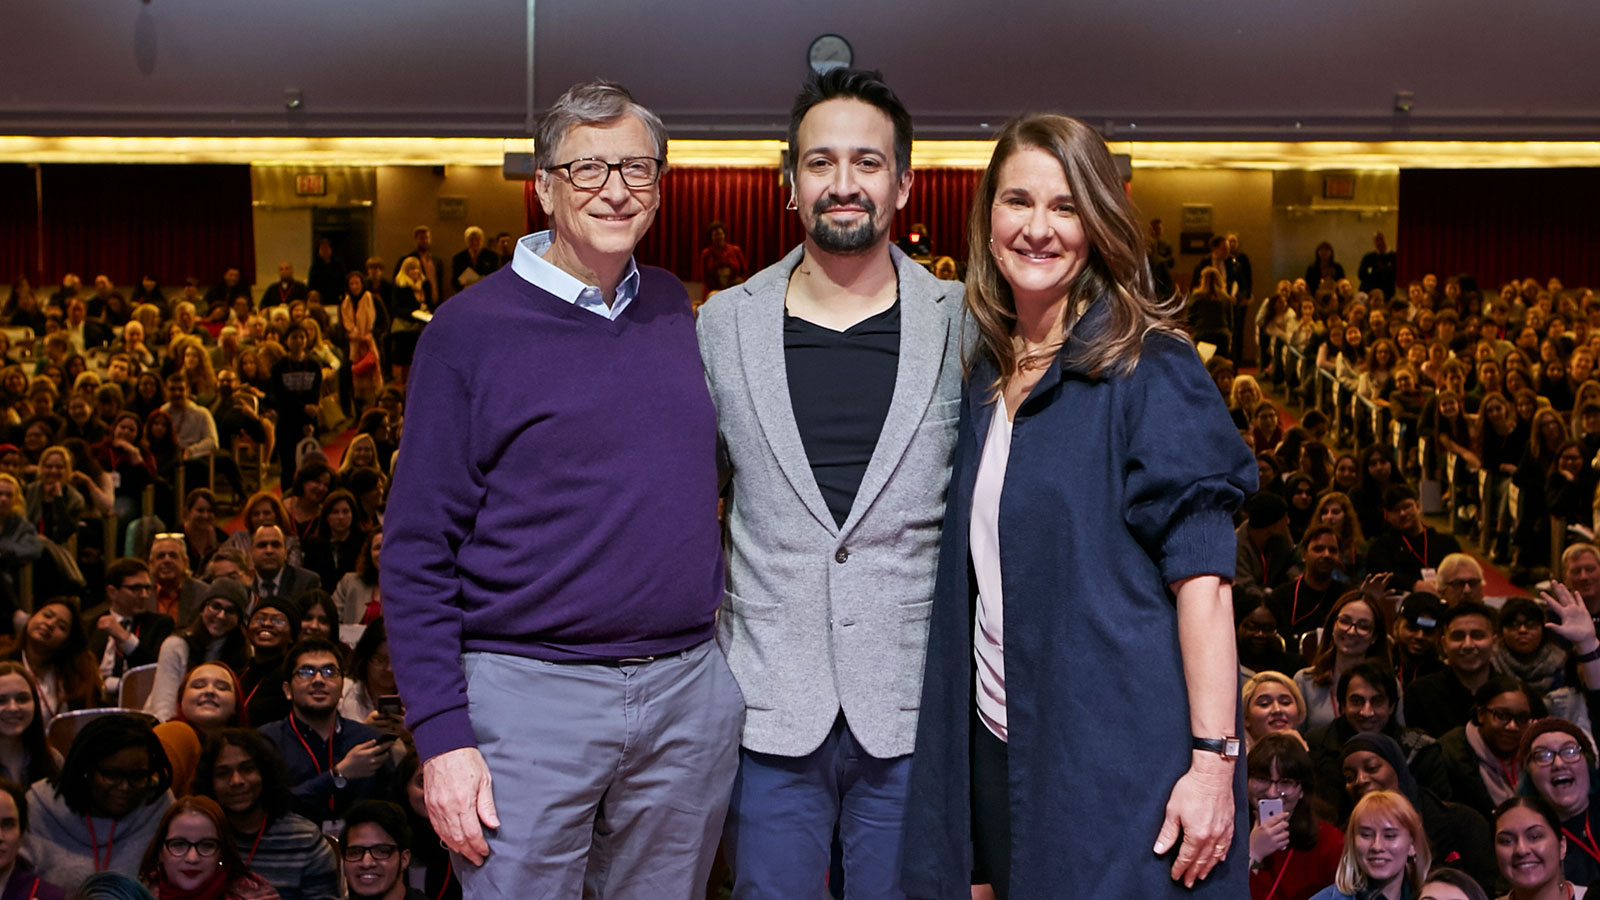 bill and melinda gates pose with lin-manuel miranda